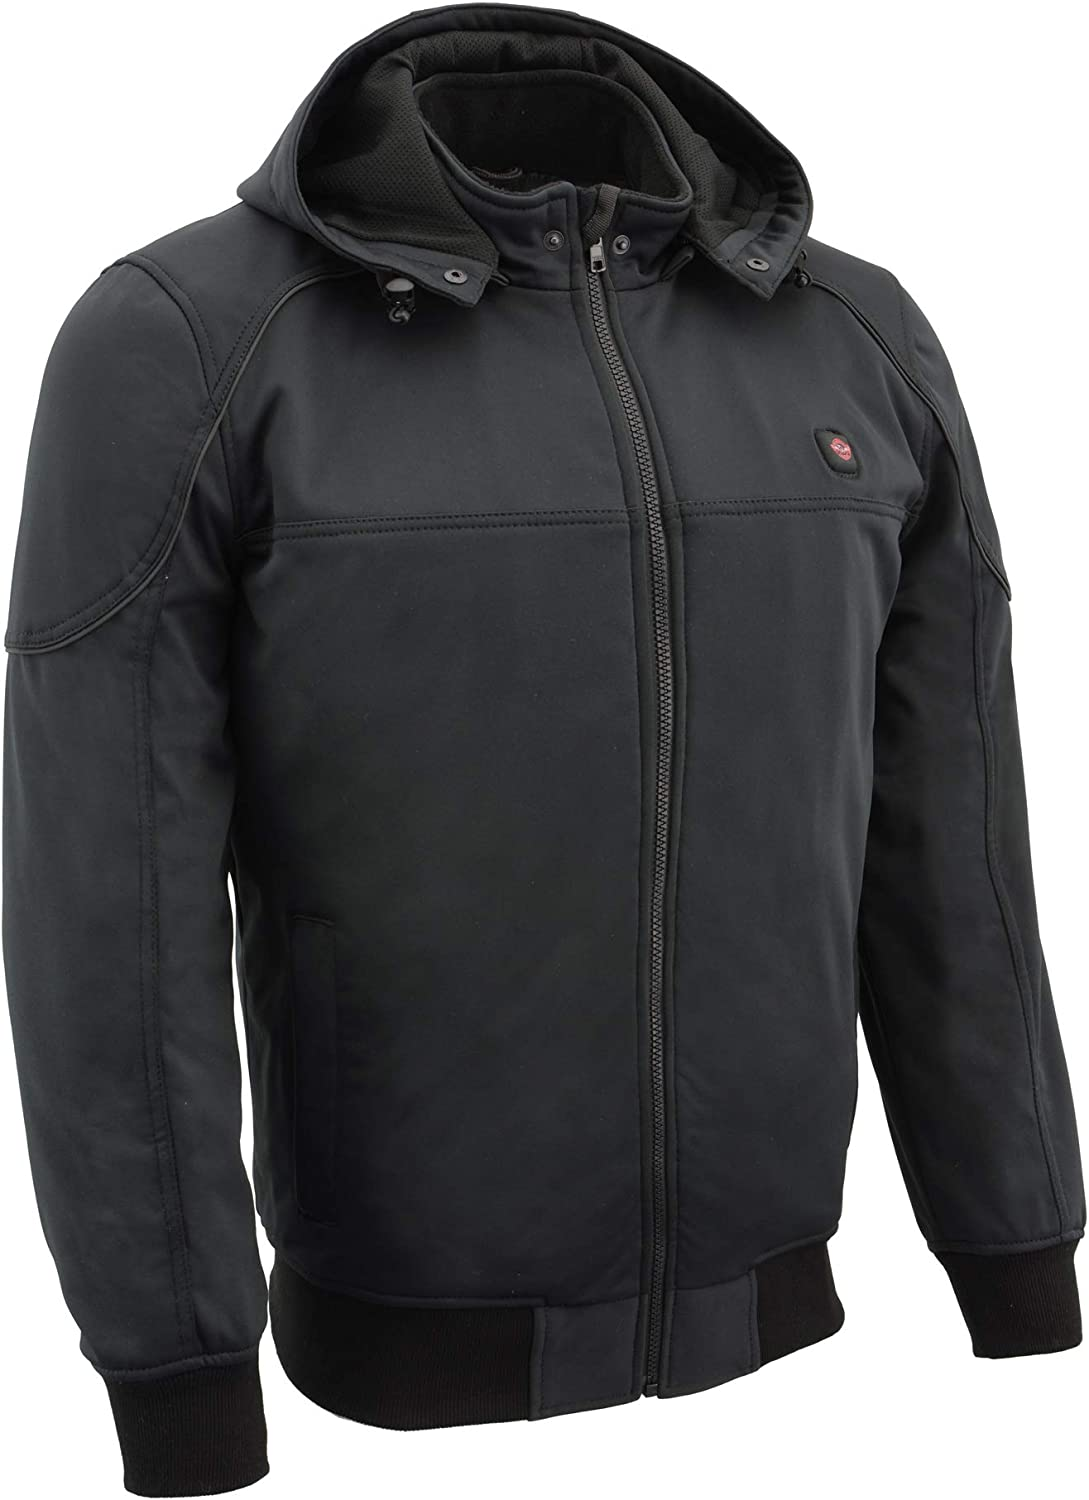 Milwaukee Leather-Mens Soft Shell Heated Racing Style Jacket w//Detachable Hood-BLACK-3X